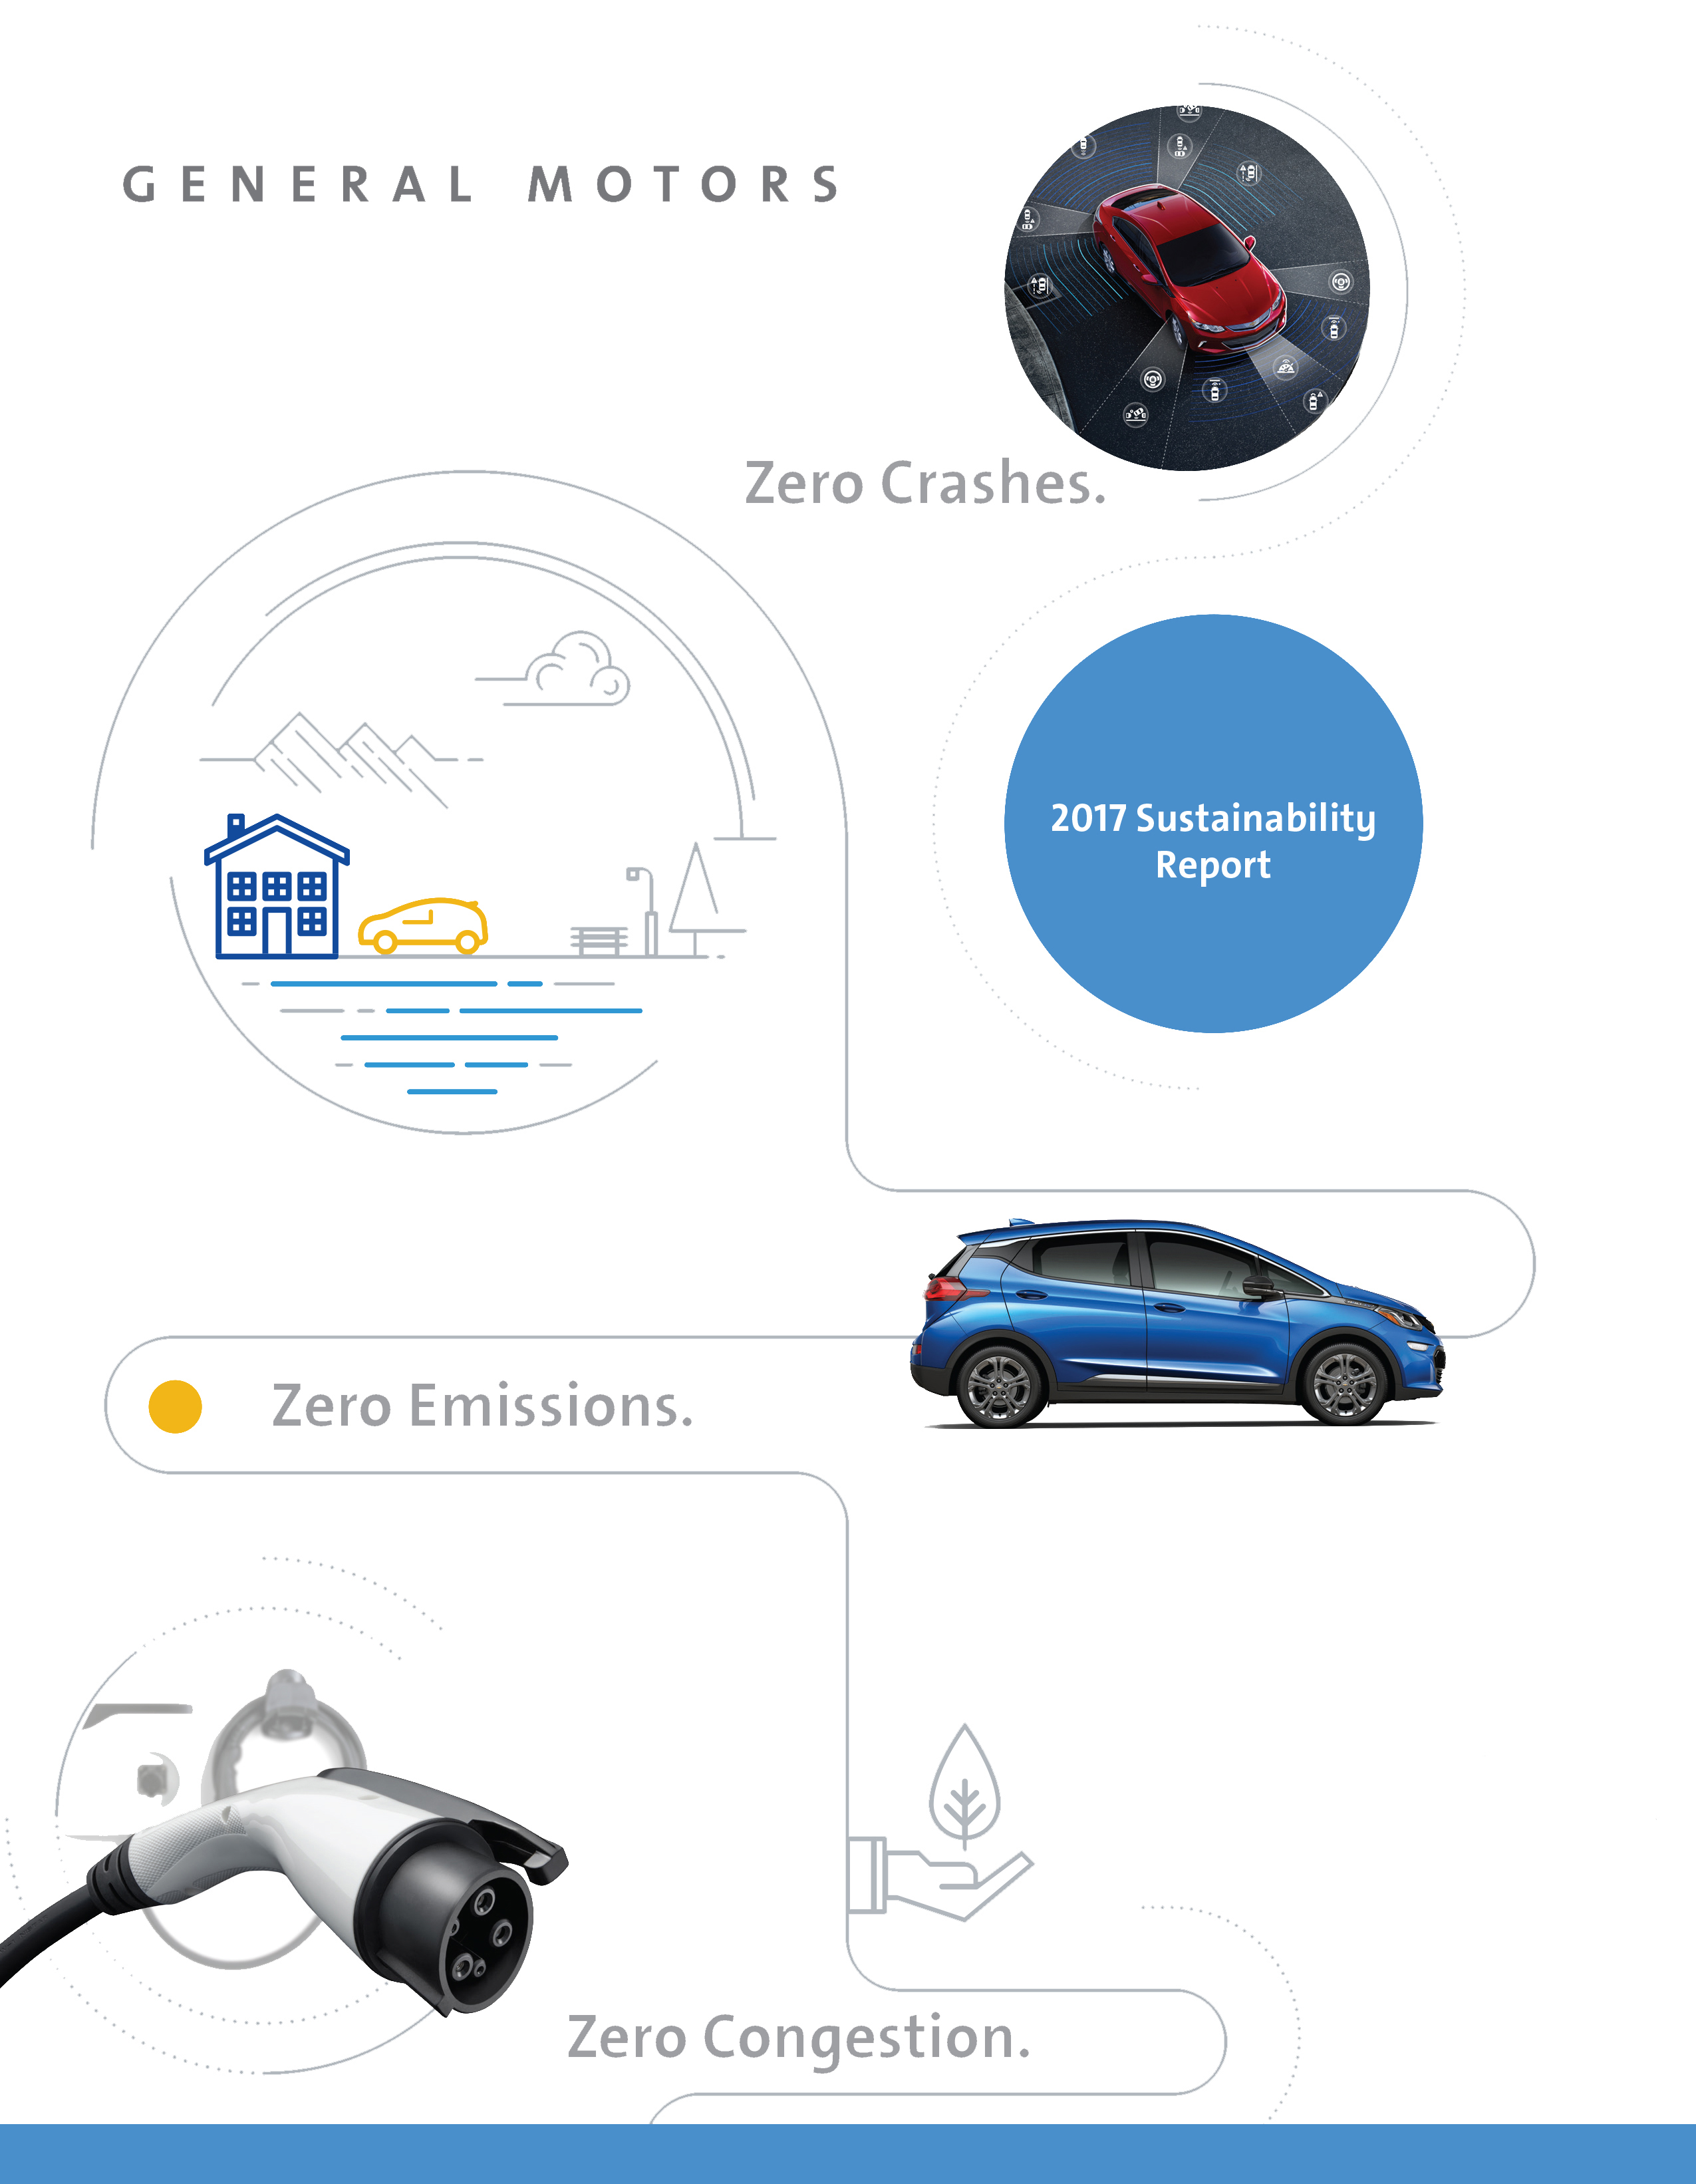 Gm S Vision Drives Value For The Company Communities And Future Mobility